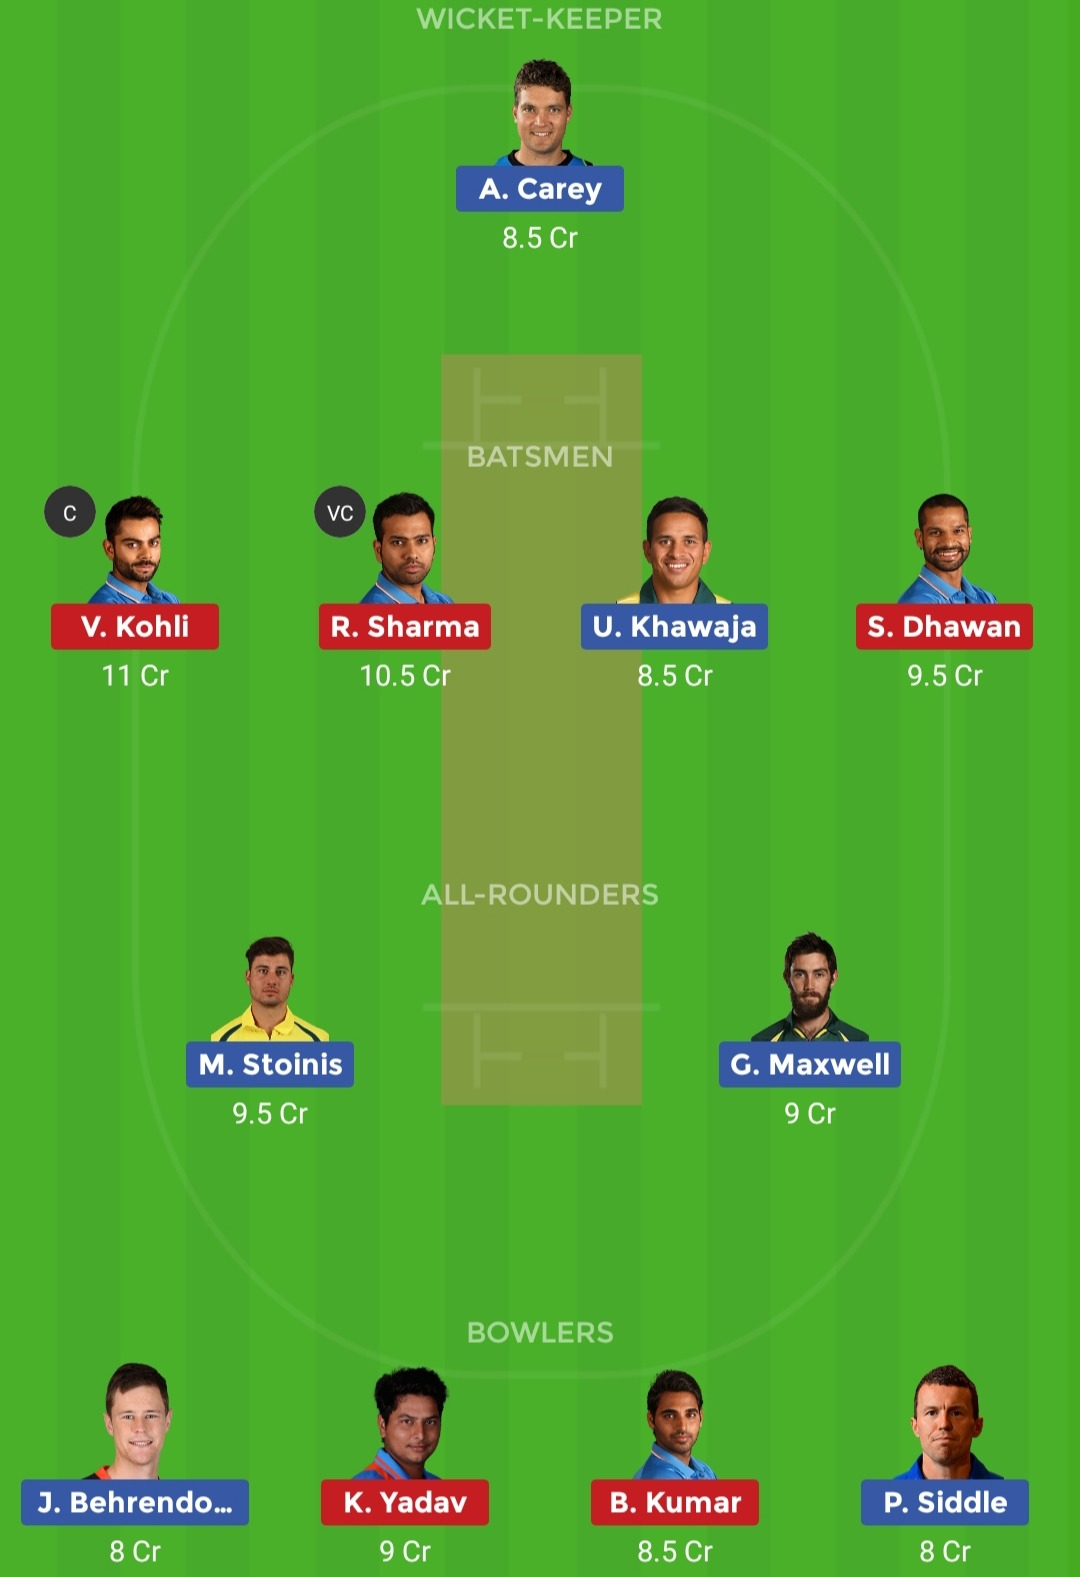 AUS vs IND Dream11 Team